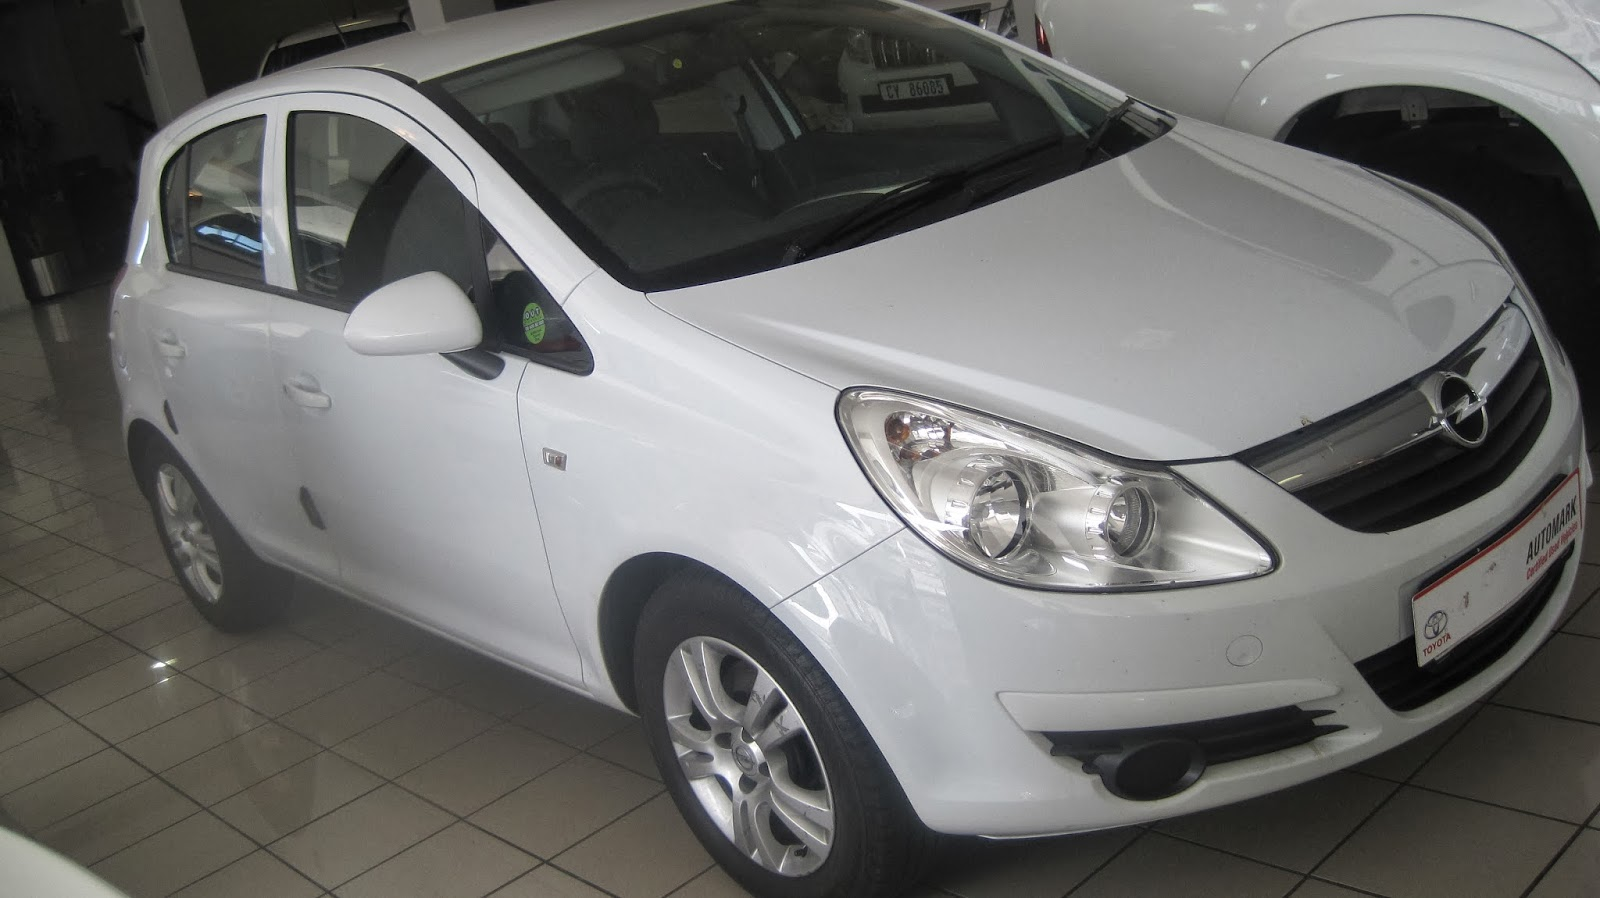 Used cars for sale in Cape Town - 2008 Opel Corsa